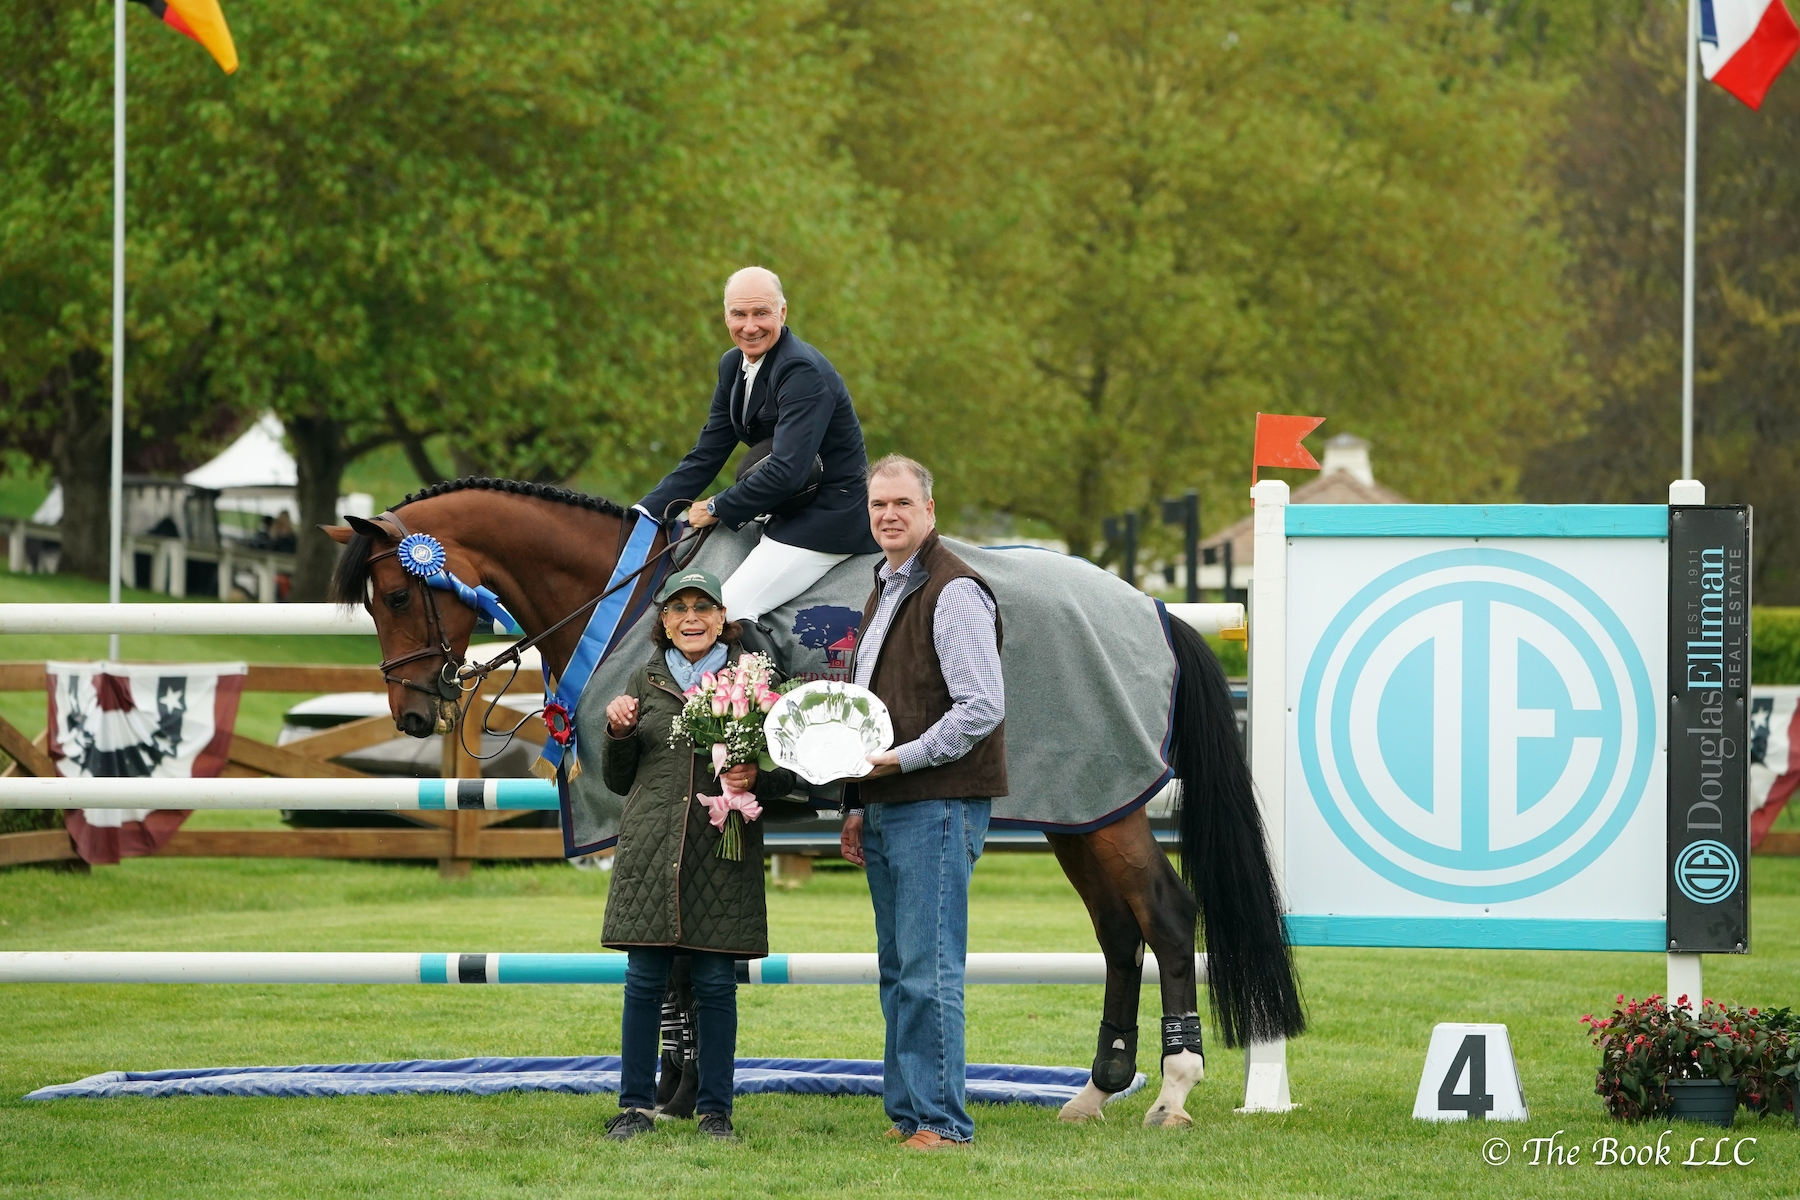 Mario Deslauriers (CAN) and Amsterdam 27 are joined by owner Rosalind Schaefer to be presented as winners of the $35,700 New York Welcome Stake CSI2*, presented by Douglas Elliman Real Estate, by Michael Fitzgibbon (center), Executive Manager of Sales at Douglas Elliman during the 2019 Old Salem Farm Spring Horse Shows at Old Salem Farm in North Salem, NY.<br><b>Photo by <a href='http://www.thebookllc.com/'target='_blank'>The Book</a></b>